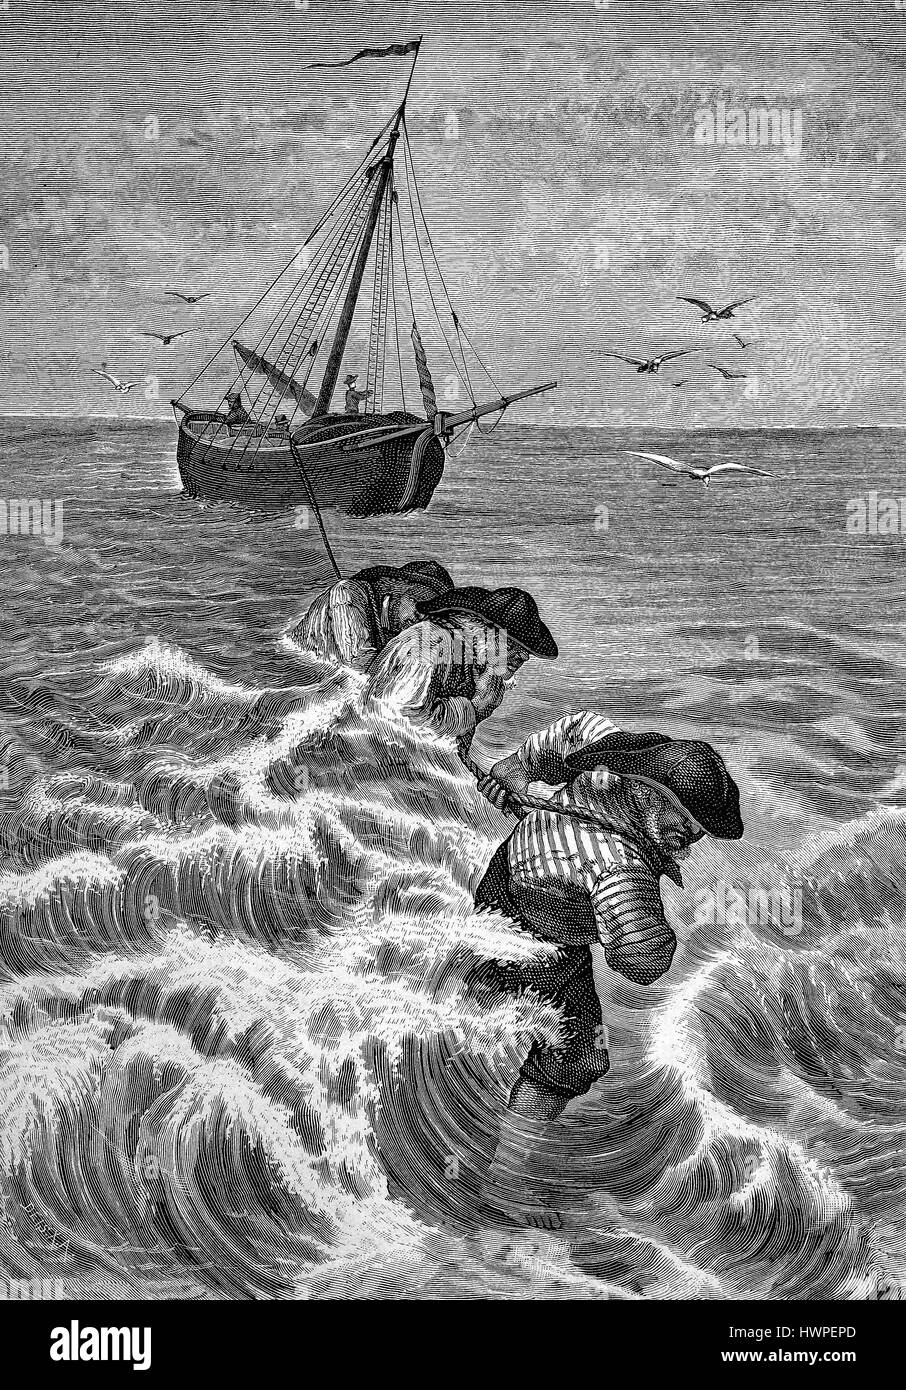 Bug letting go of a vessel by the tidal flats of the North Sea, Wadden Sea, Reproduction of an original woodcut - Stock Image